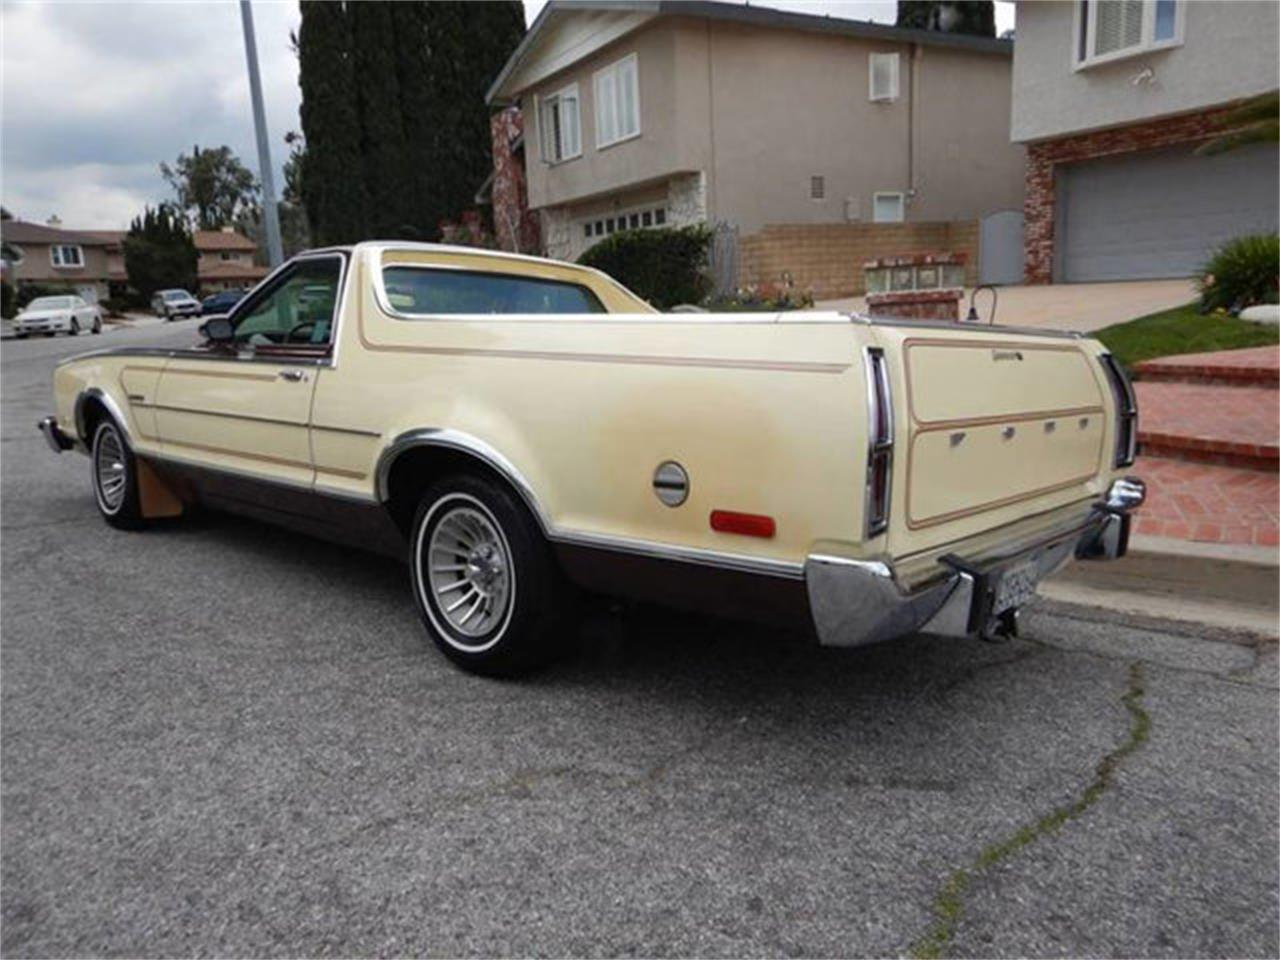 Large Picture of 1978 Ford Ranchero located in Long Island New York - $15,500.00 - QWQN